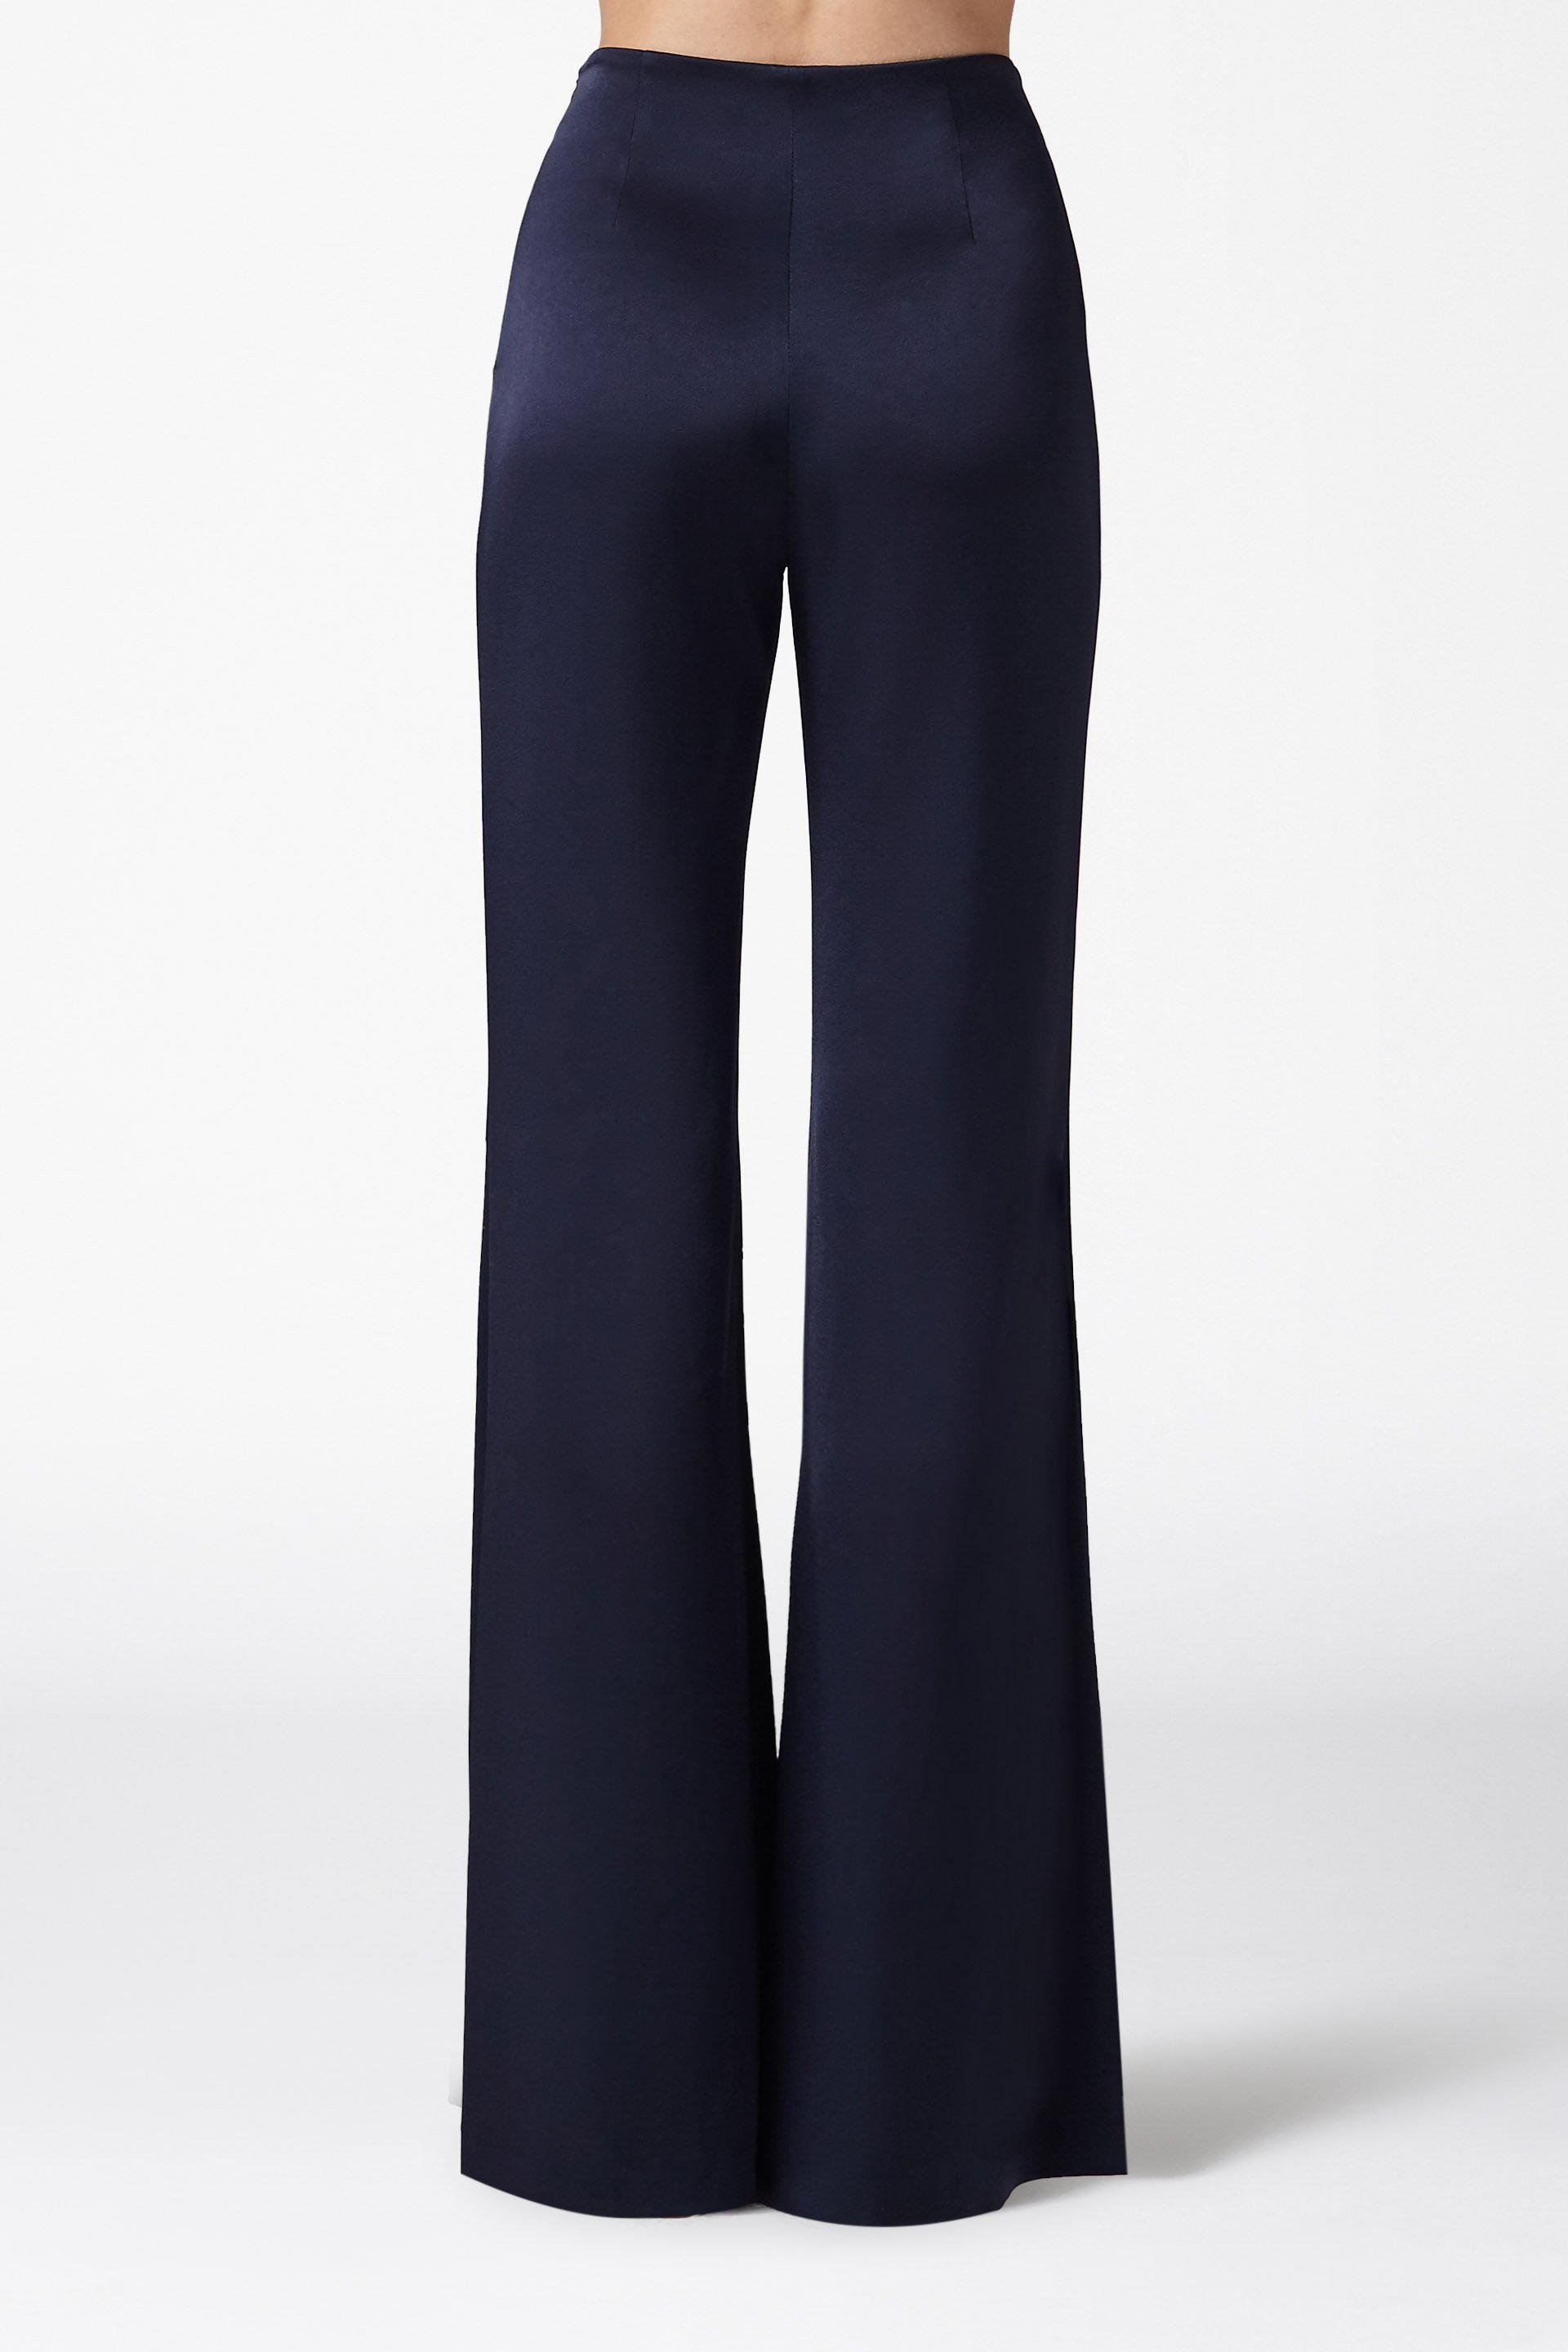 High Waisted Satin Trousers - Midnight 3